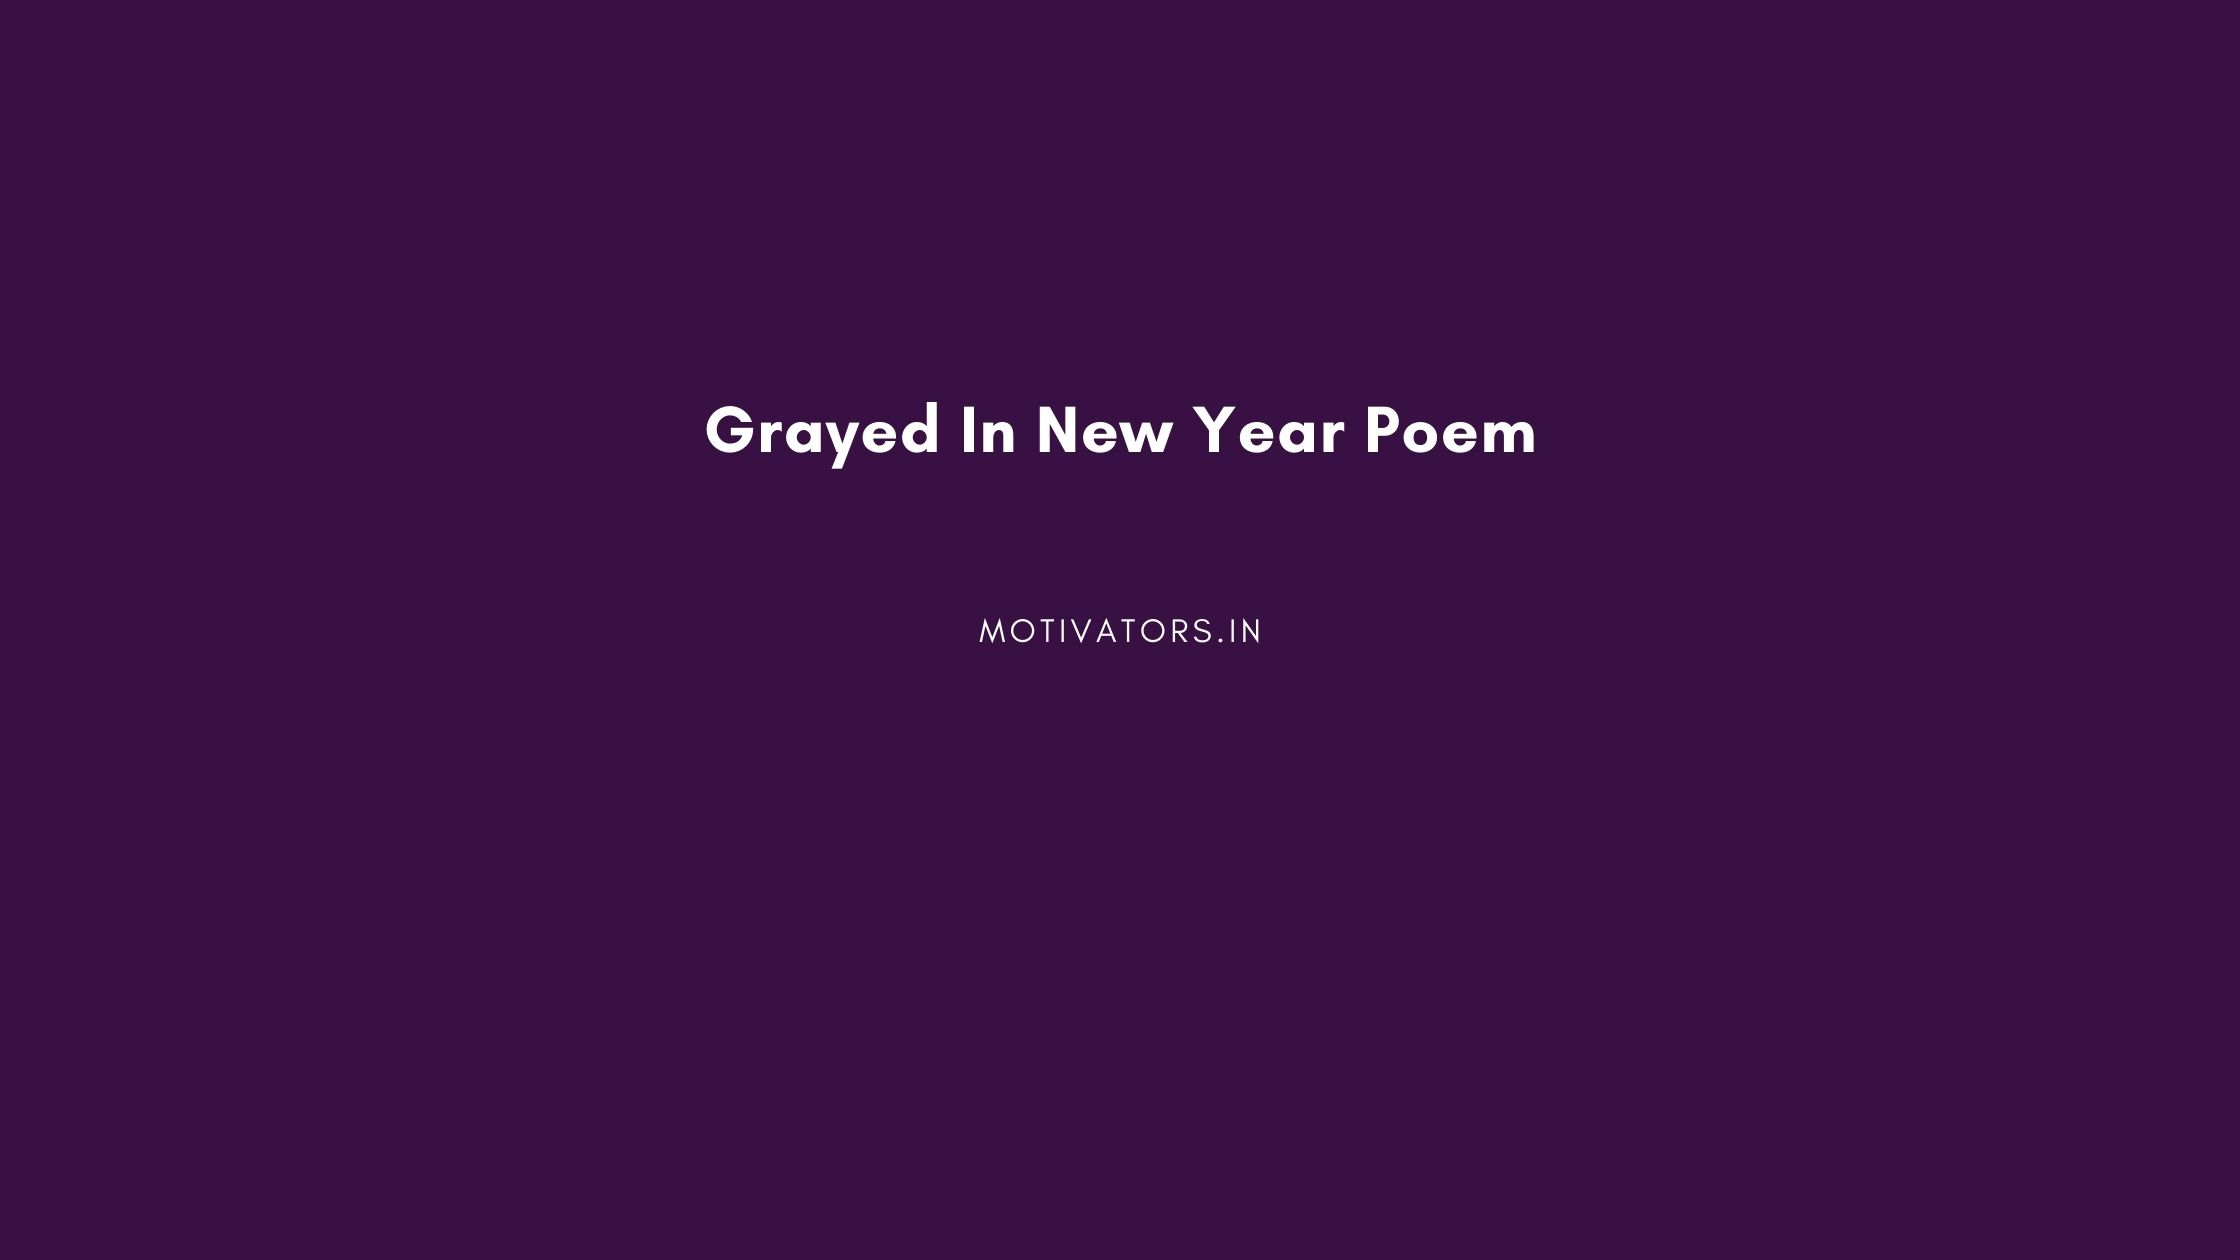 Grayed In New Year Poem